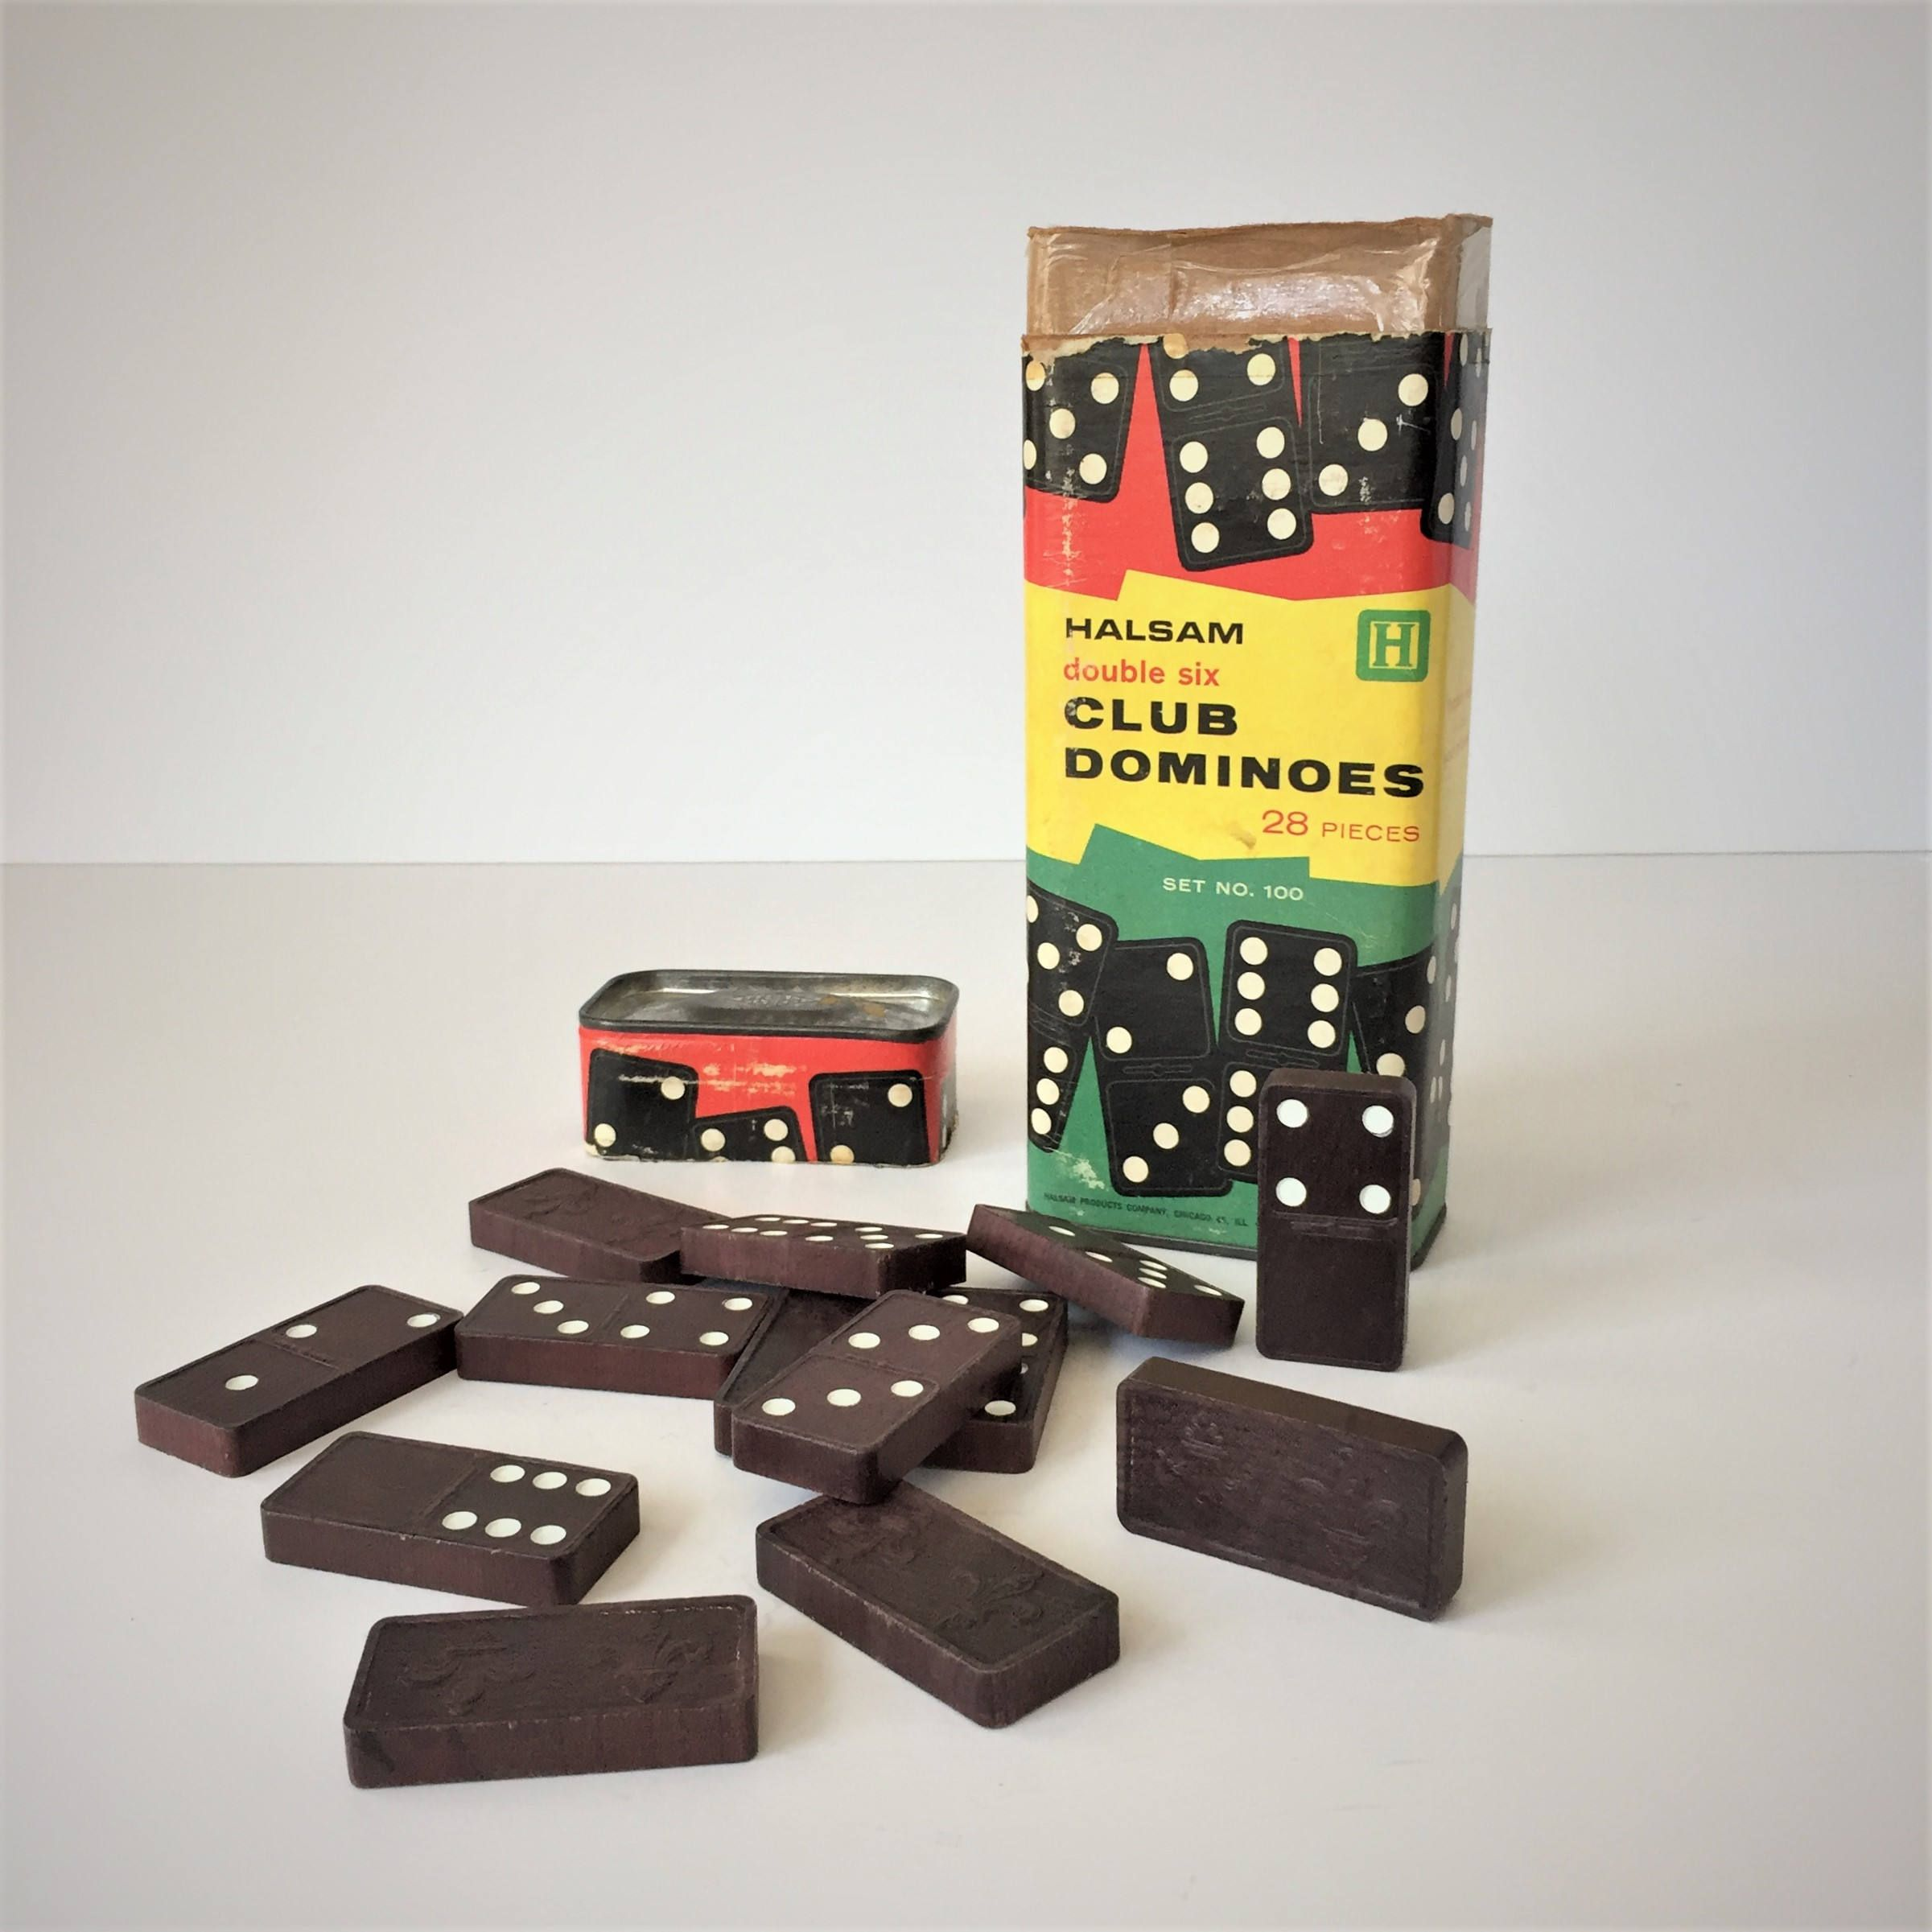 Dominoes Set, Vintage Double Six Club Dominoes, Halsam Domino Game,